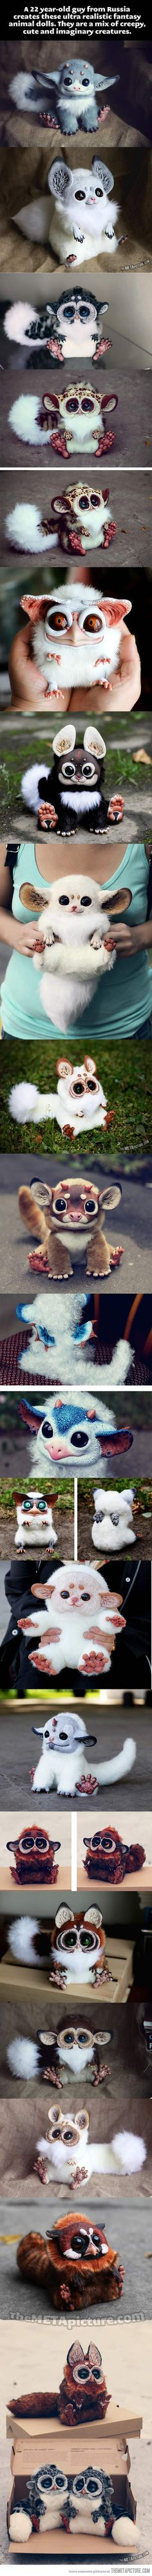 They look so real...  I want one!